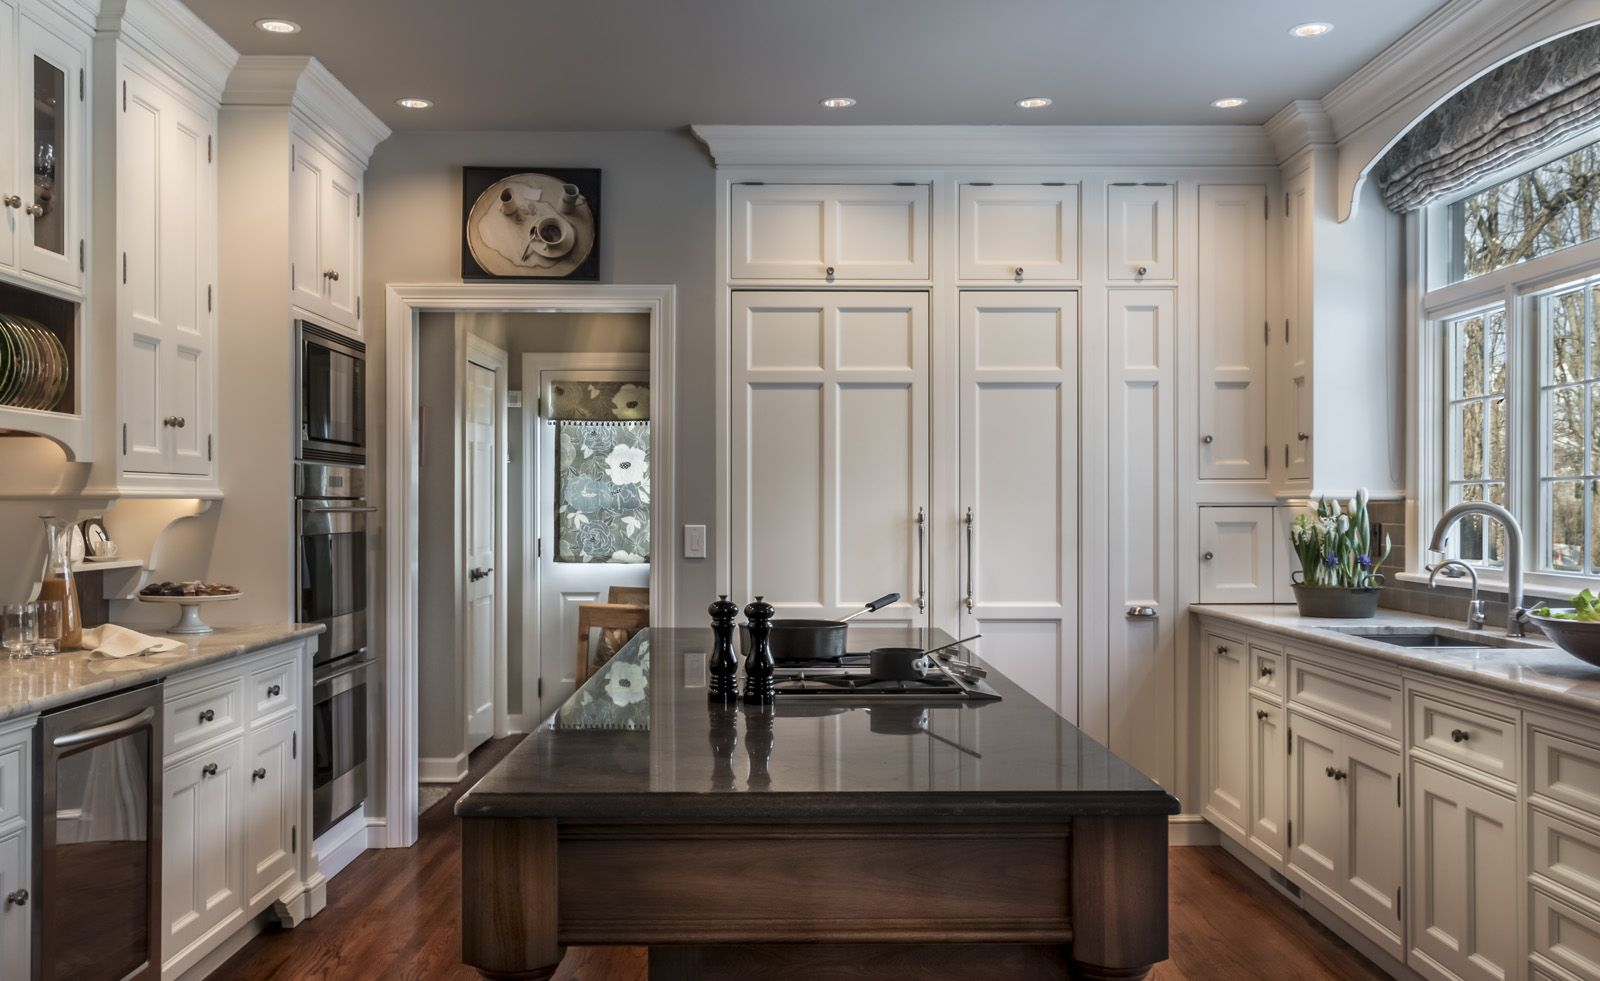 This traditional kitchen is a visual work of art amid the ordinary ...